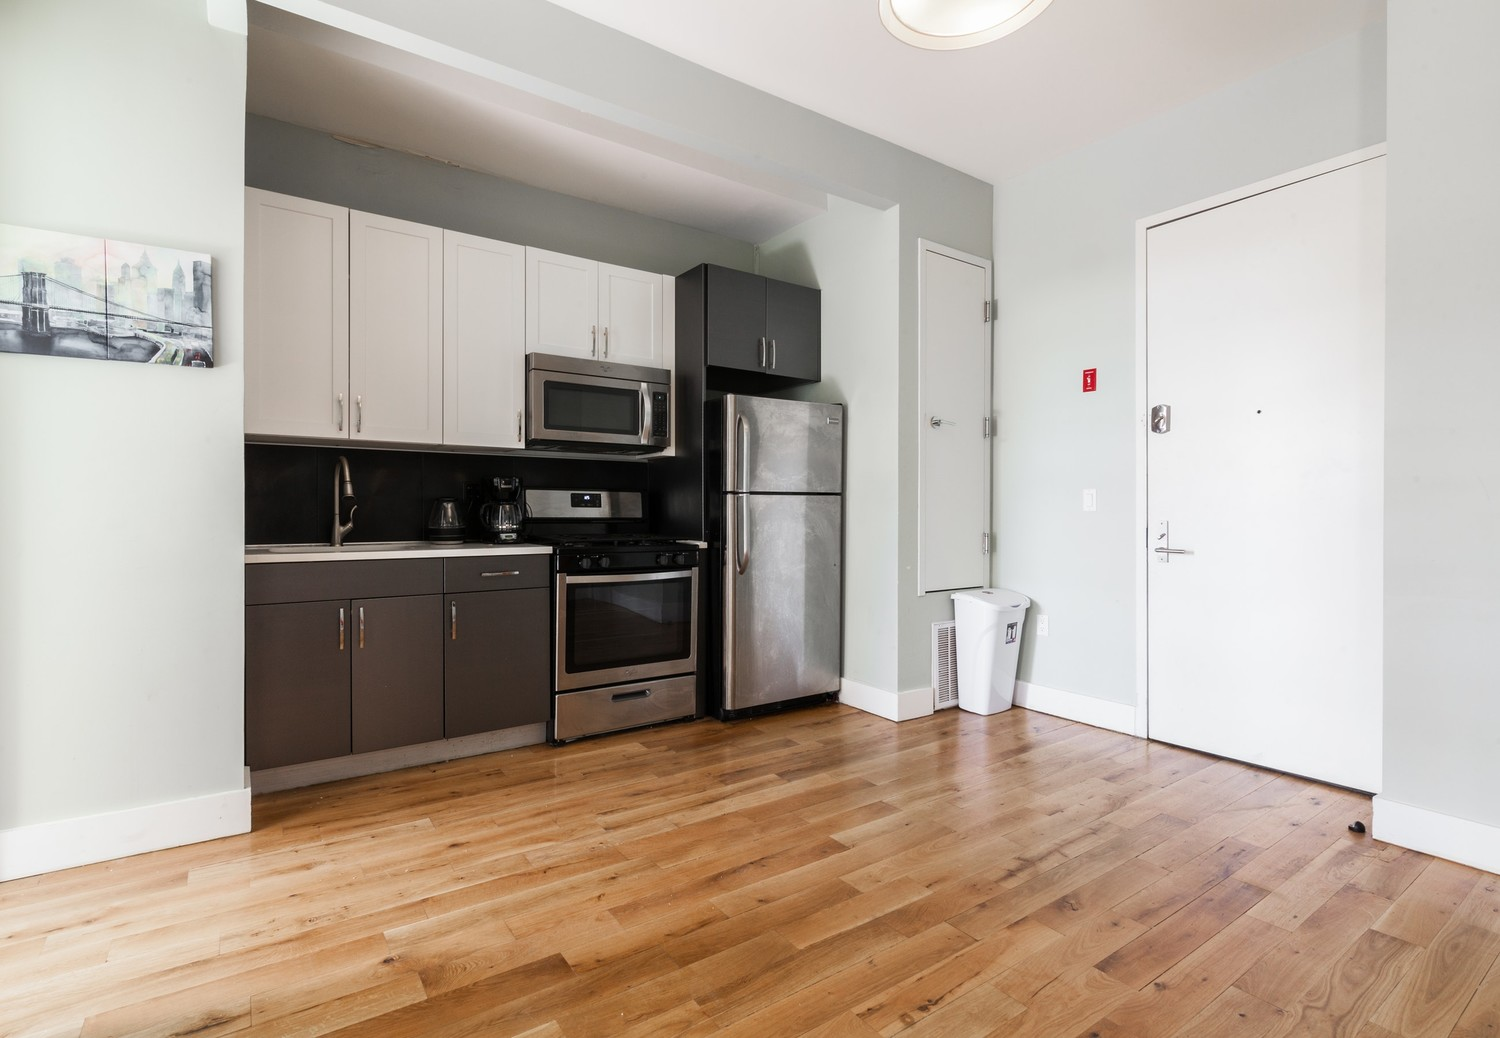 Furnished 3 Bed / 1 Bath Apt. - Get a Private Room with Utilities & WiFi Included!